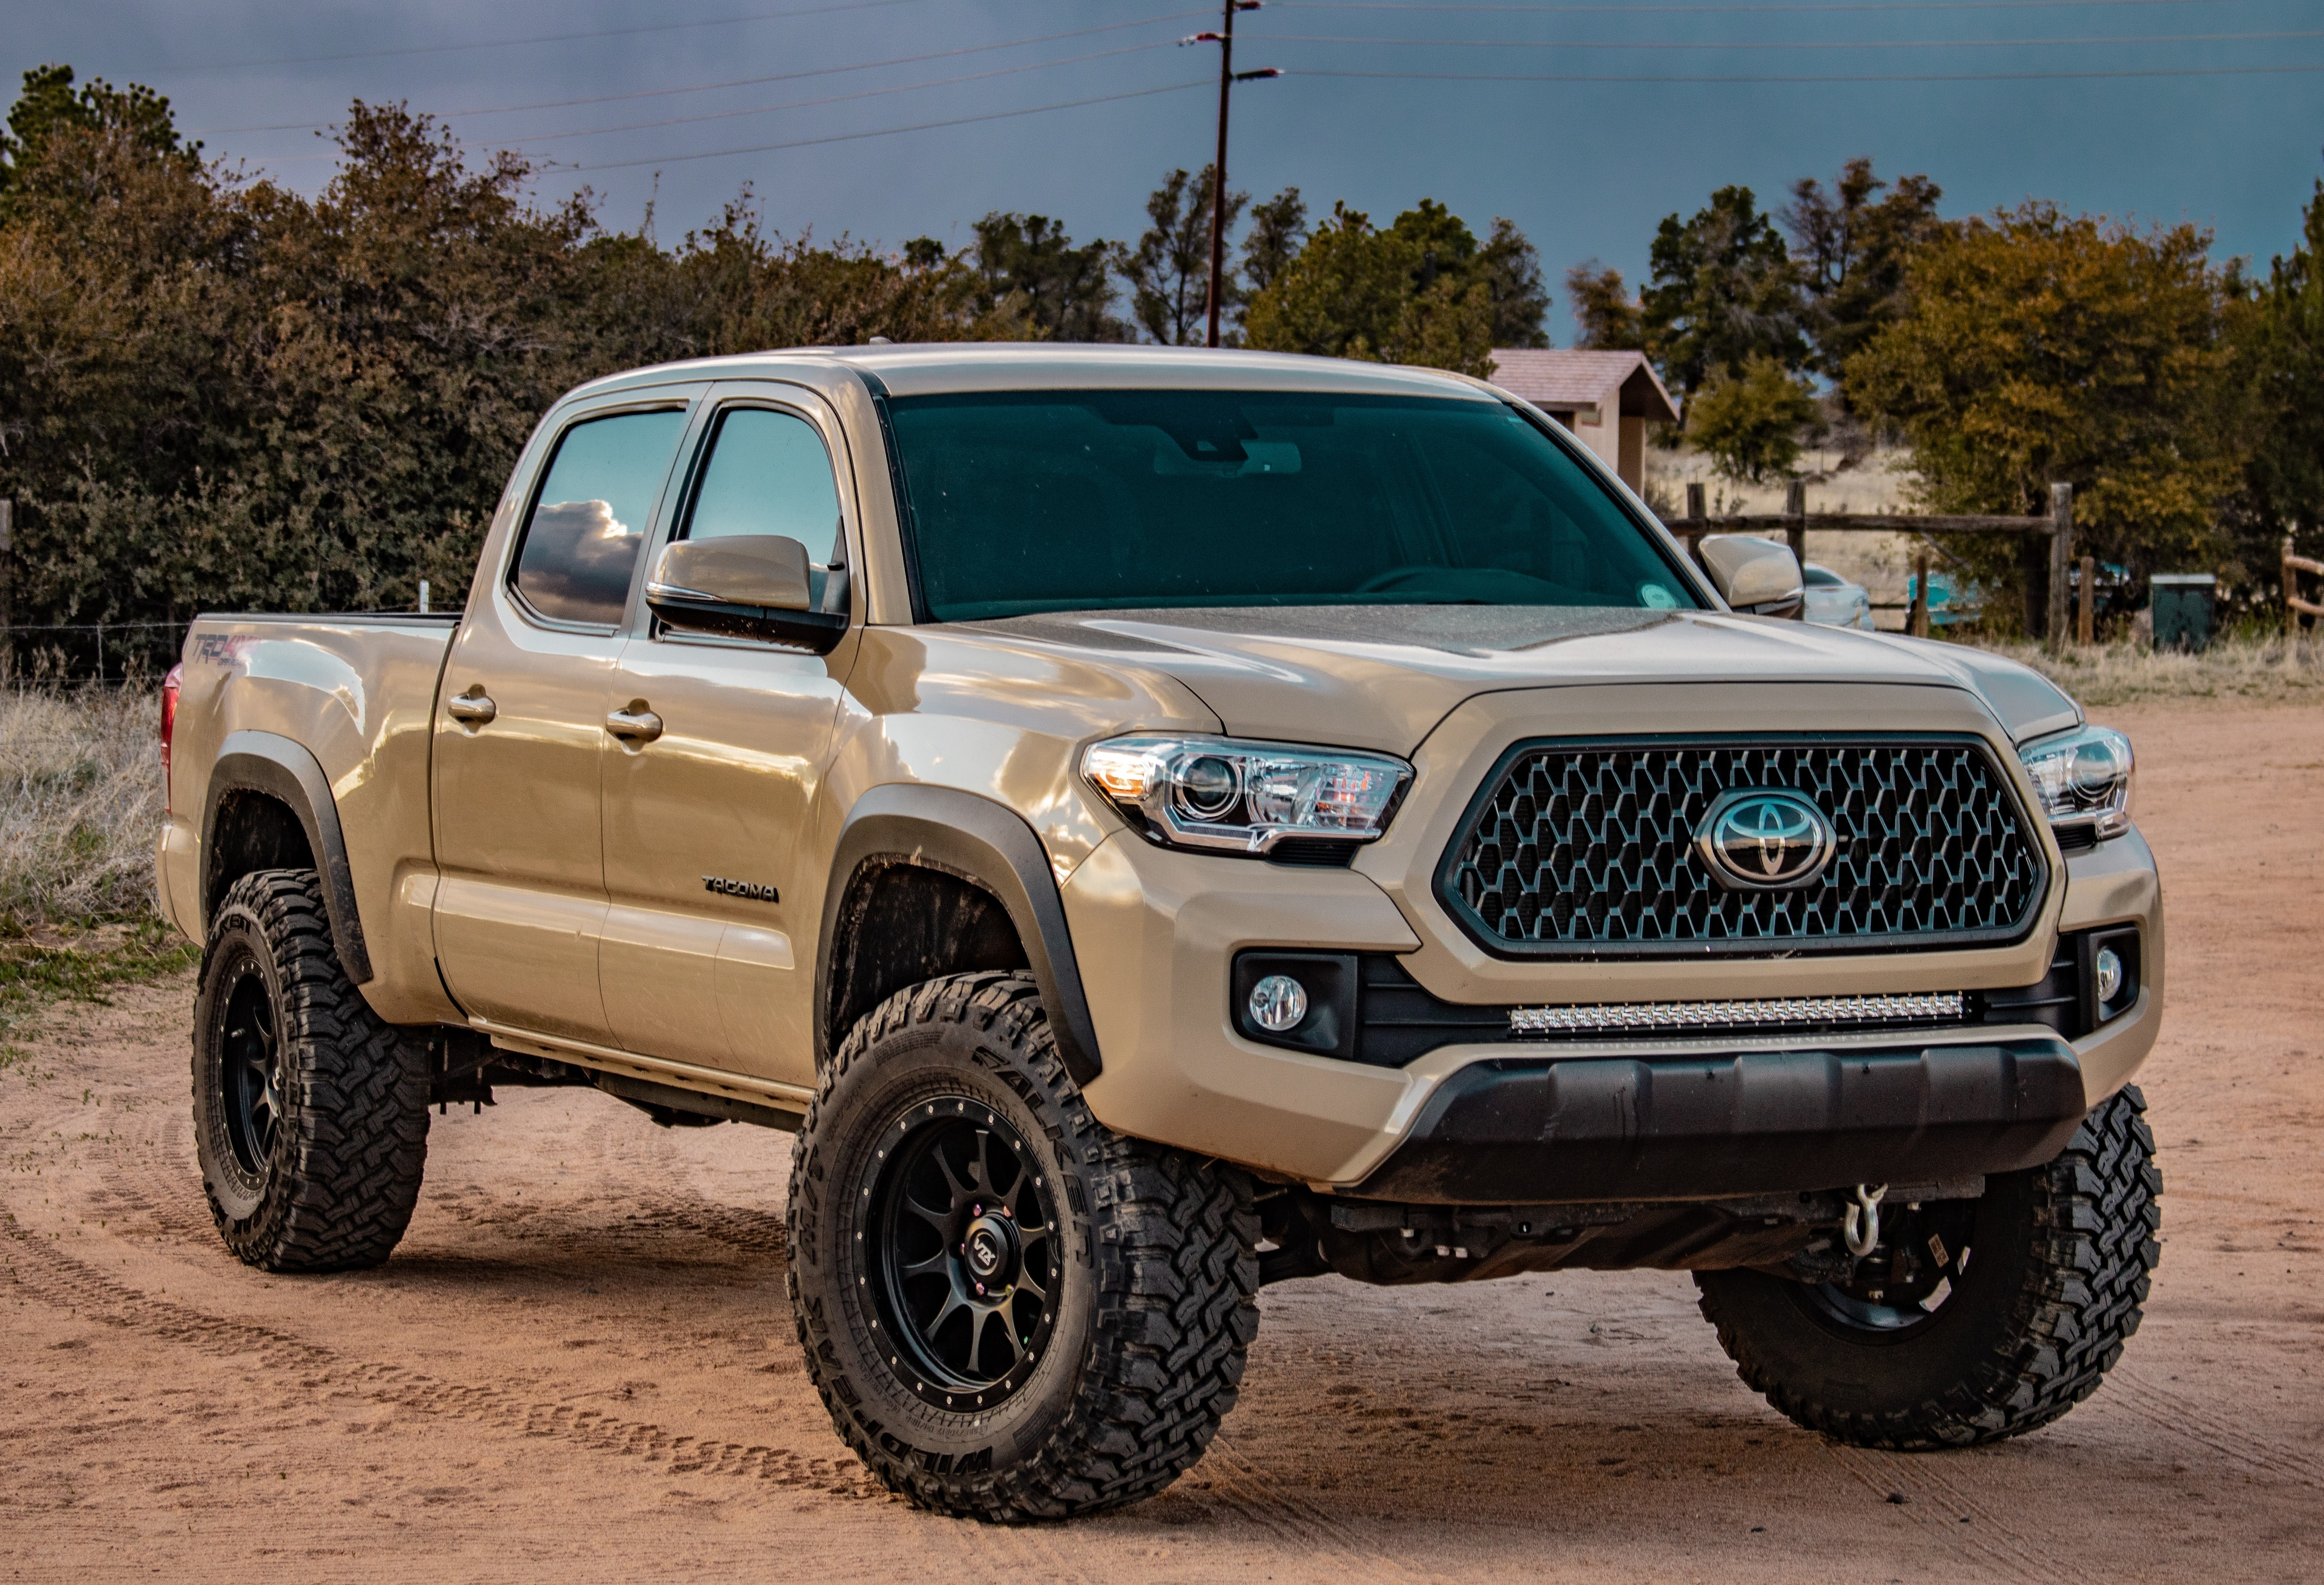 What you can get to personalize your vehicle at Boch Honda, Boch Toyota, Boch Nissan, Boch Hyundai, Boch Chevrolet, Genesis of Norwood, Boch Toyota South, Boch Honda West, Boch Nissan South, & Boch New to You in Massachusetts, MA | Toyota Tacoma with lifted suspension